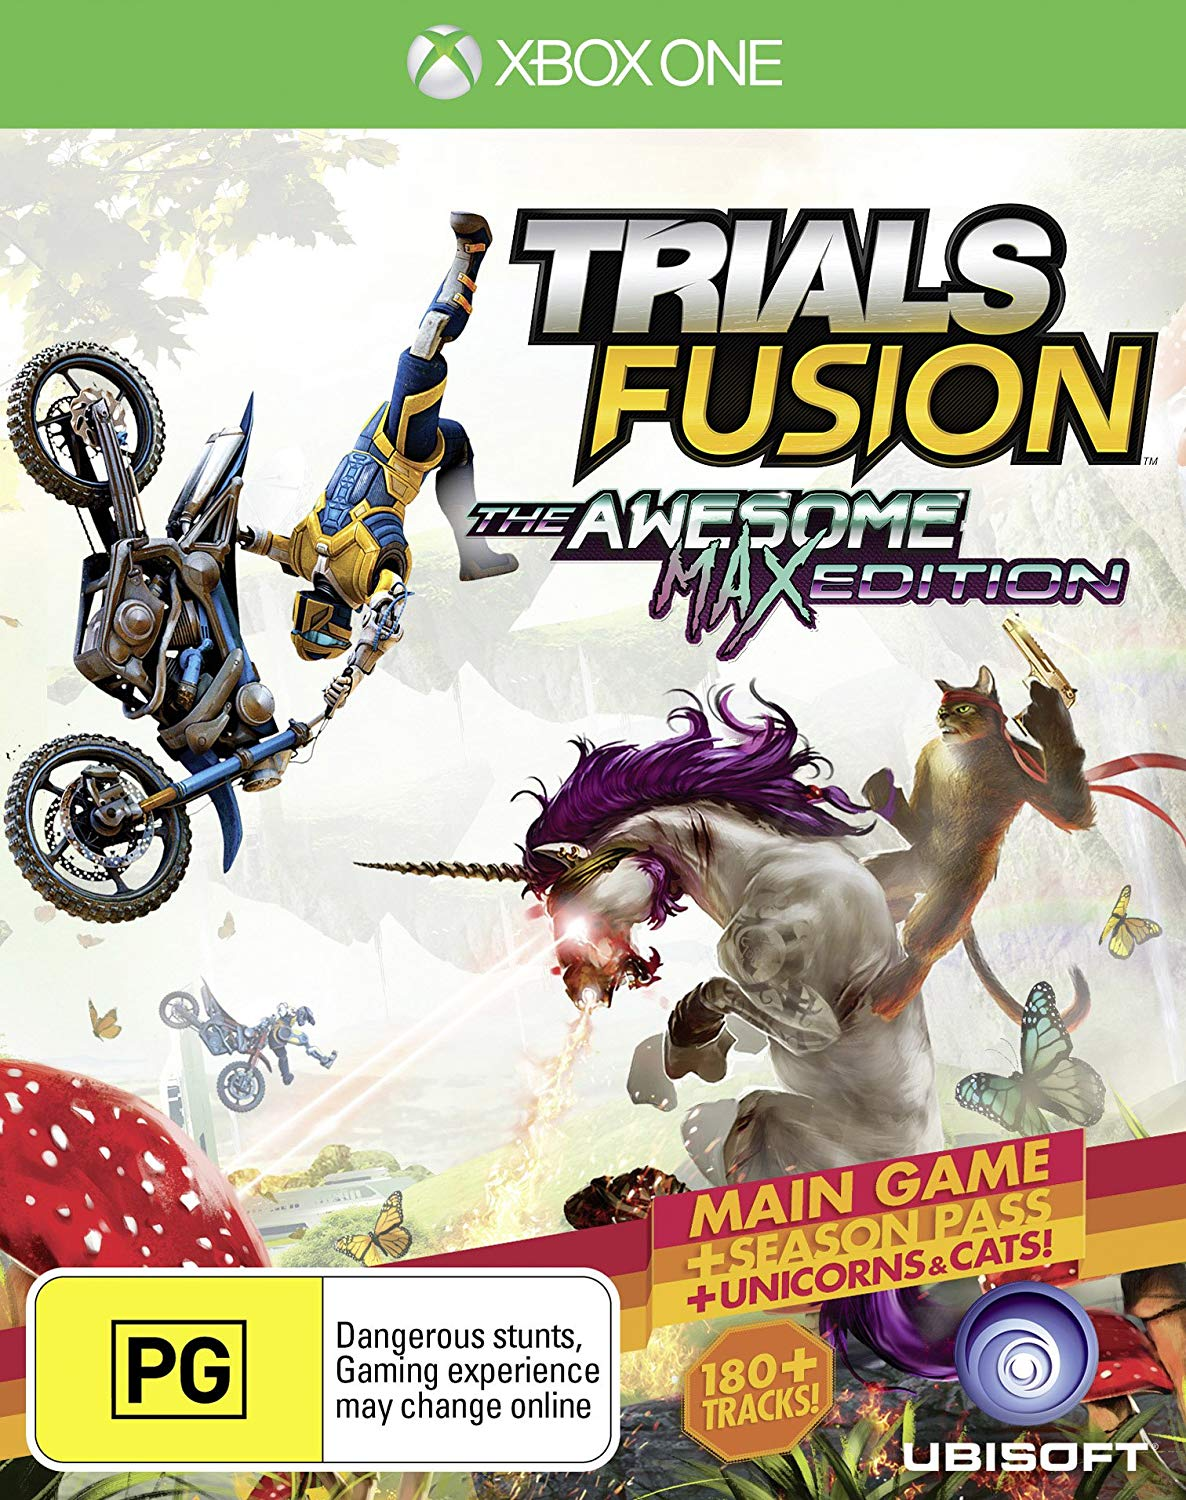 TRIALS FUSION THE AWESOME MAX EDITION ANZ XBOX ONE